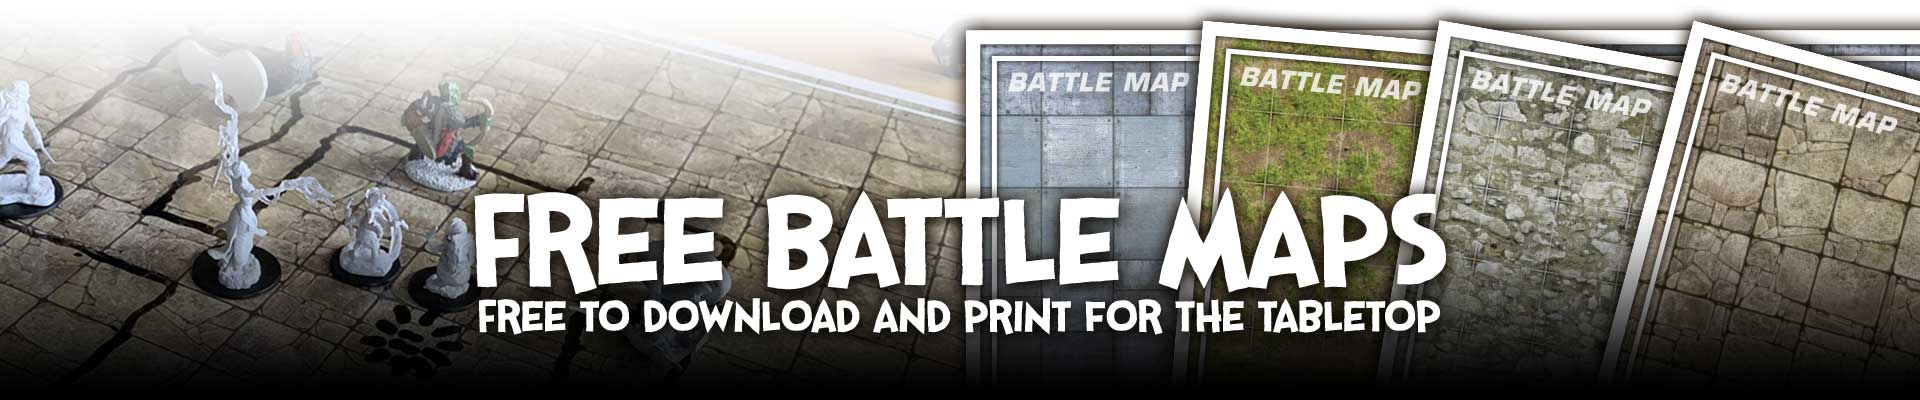 Free Battle Maps